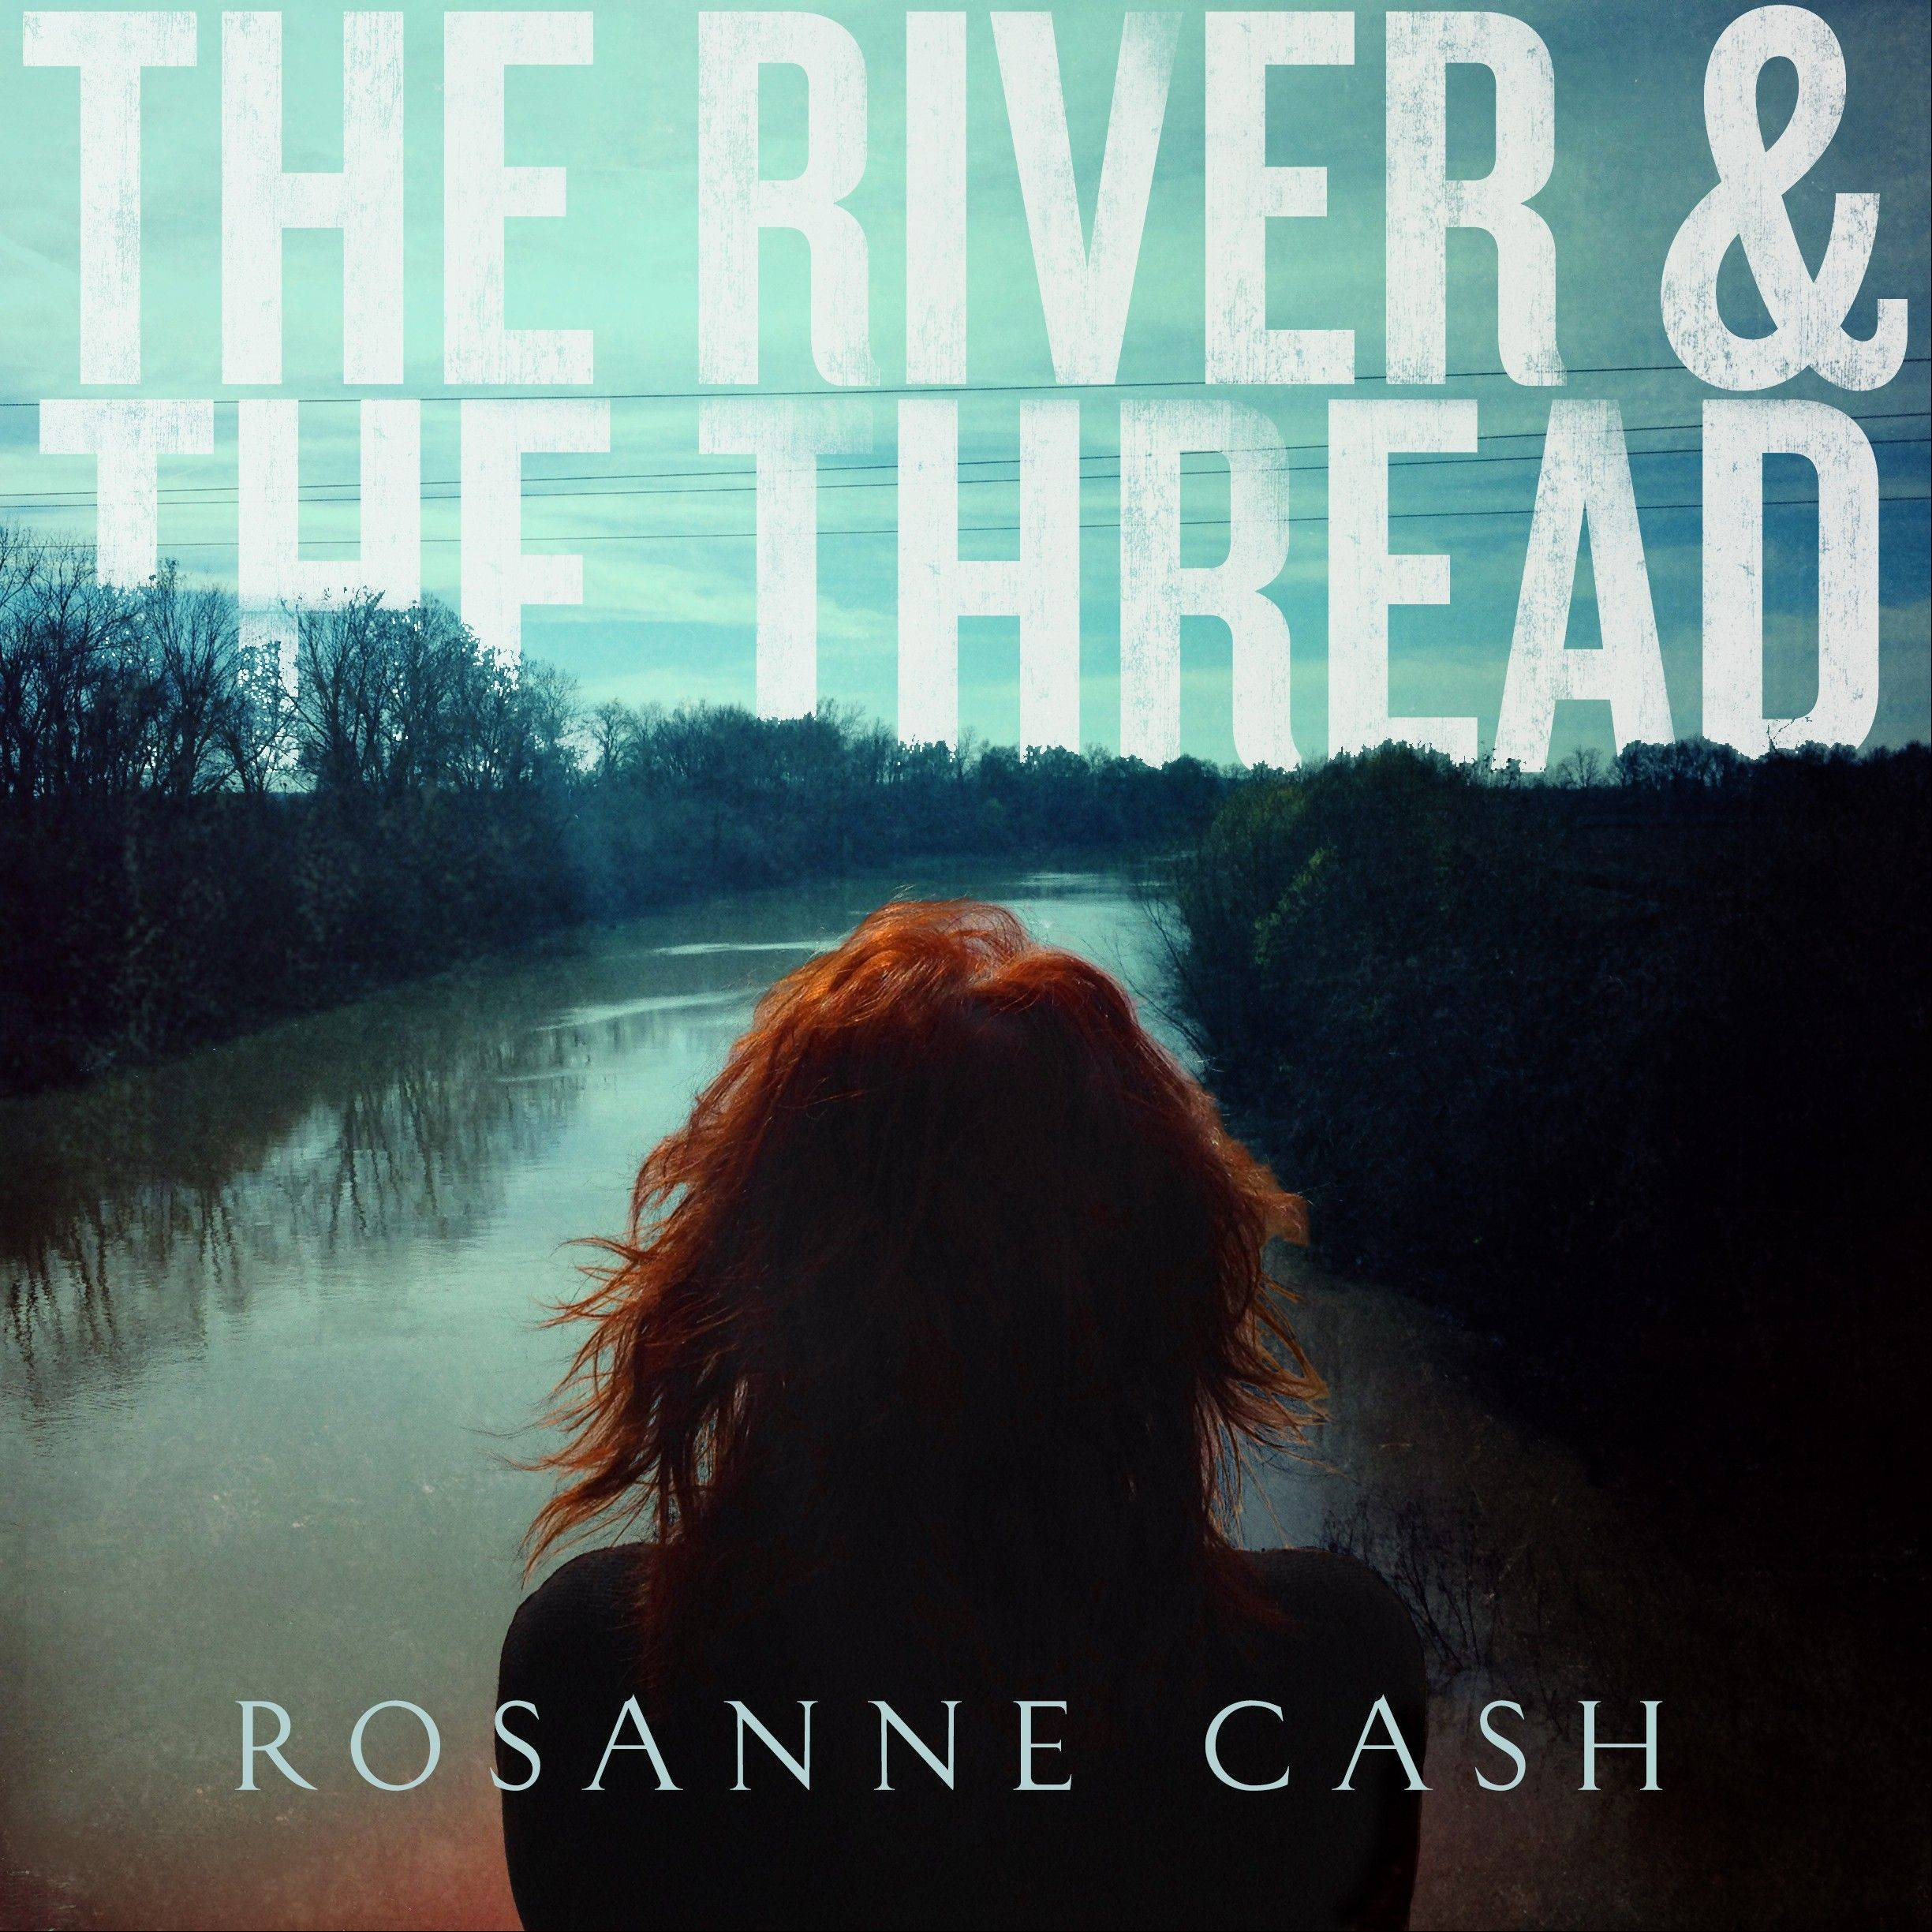 �The River & The Thread� is the latest release by Rosanne Cash.